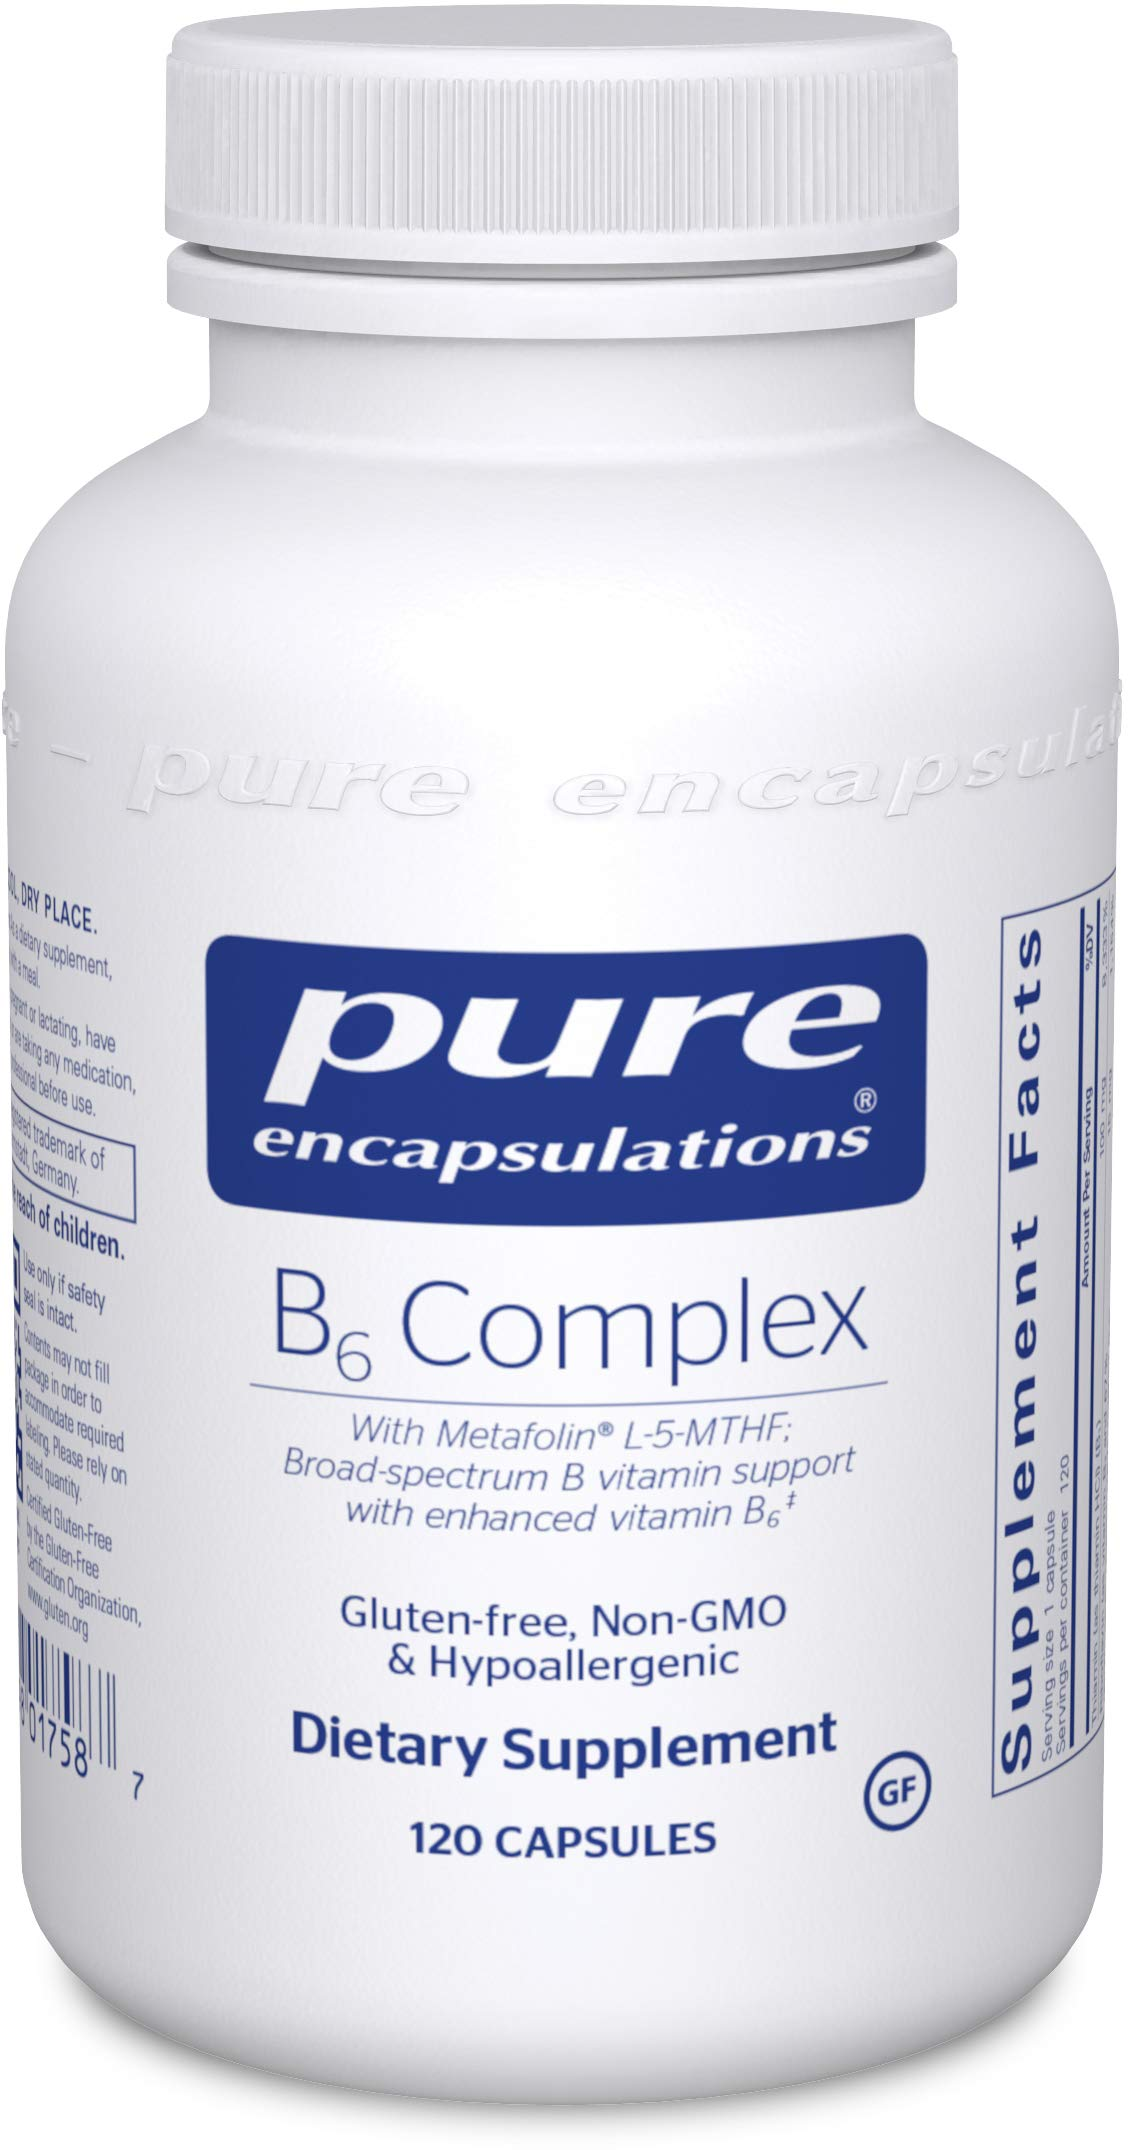 Pure Encapsulations B6 Complex | Vitamin B6 Supplement to Support Cellular, Cardiovascular, Neurological, and Psychological Health* | 120 Capsules